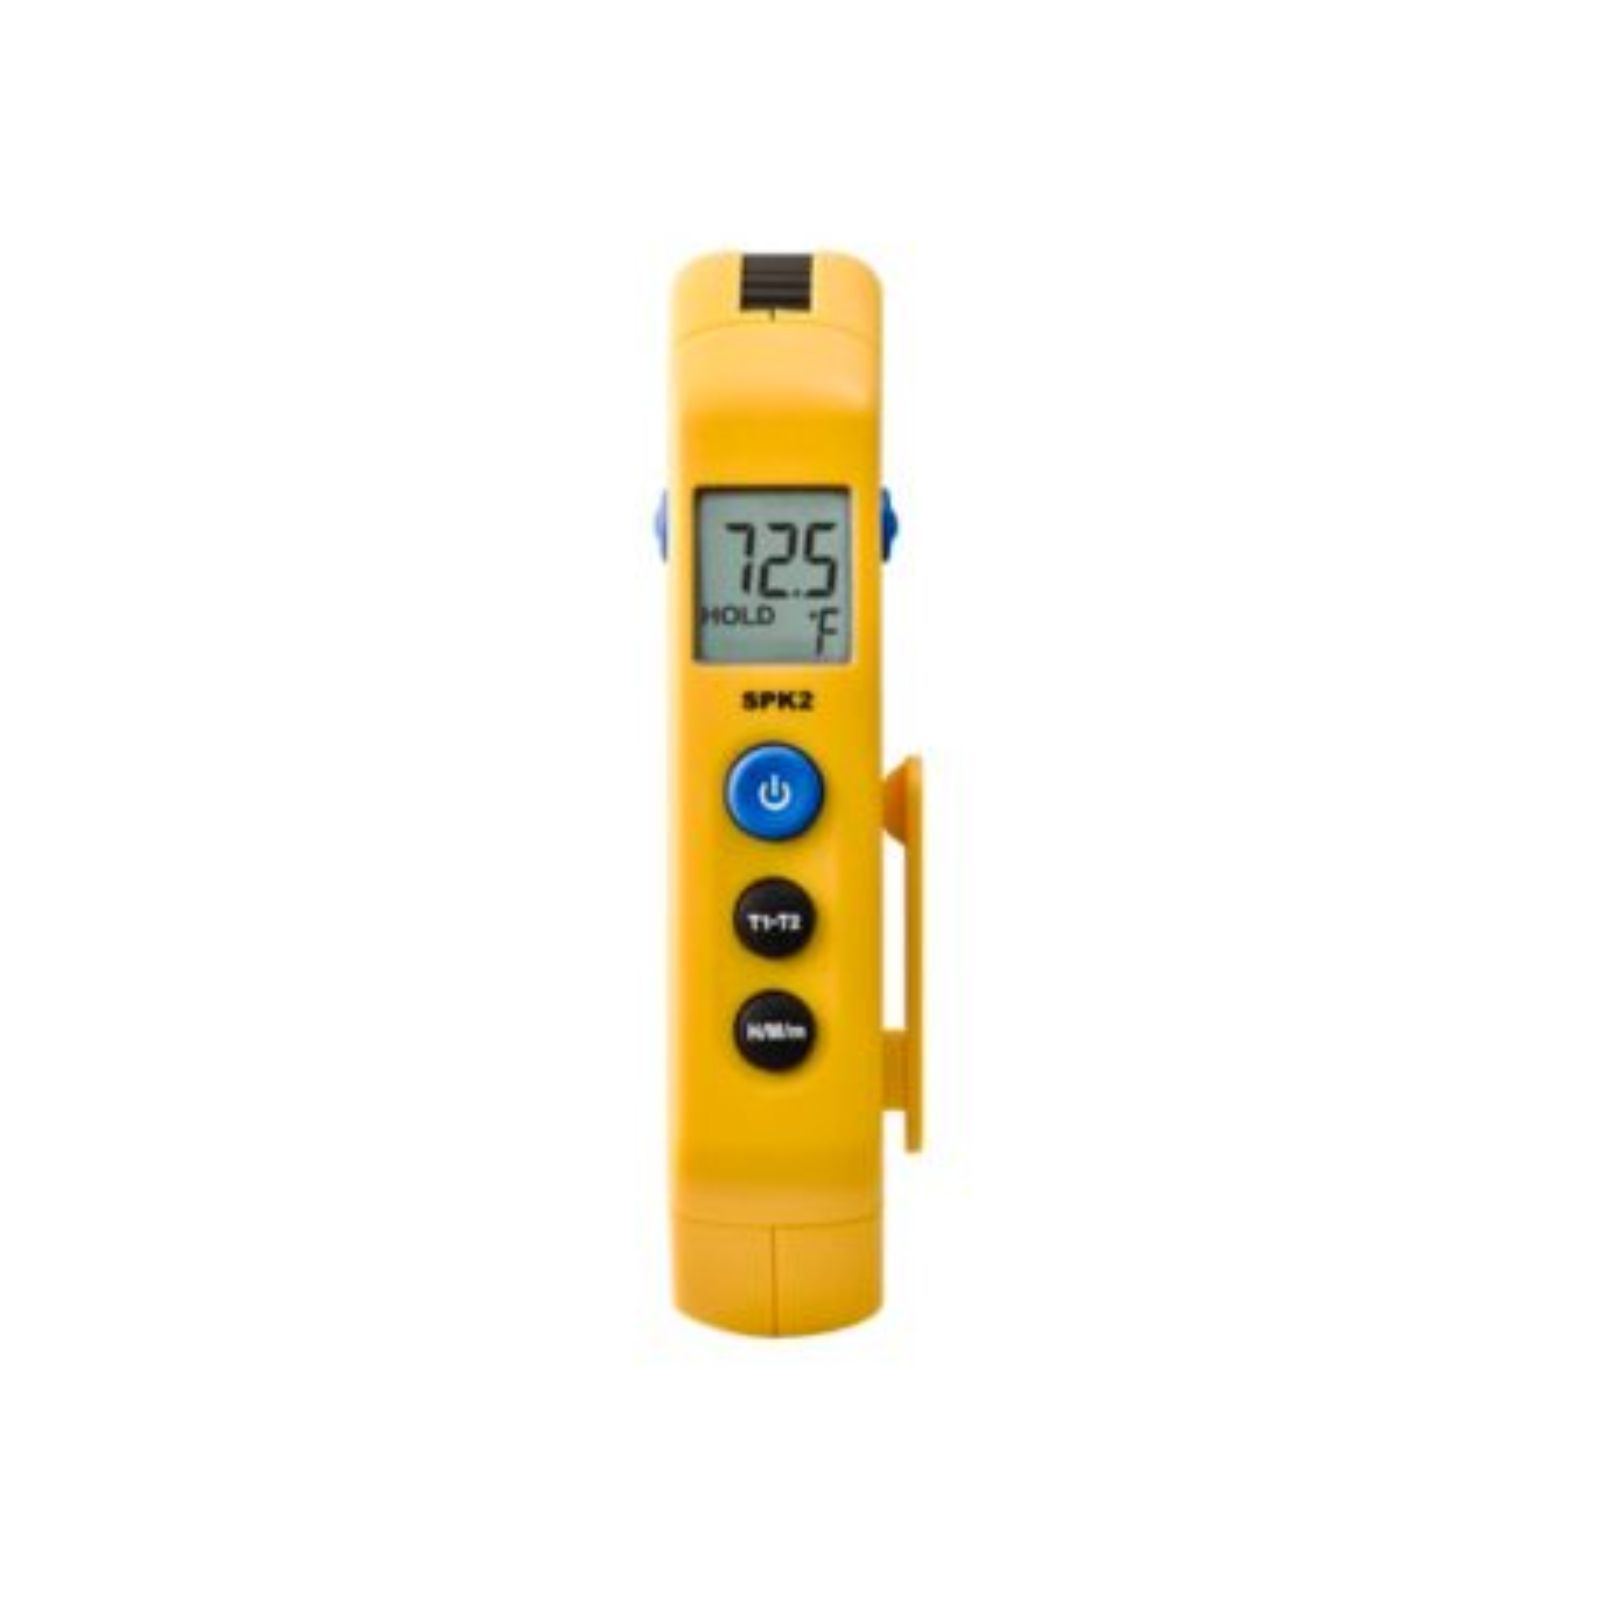 Fieldpiece SPK2 - Folding Pocket In-Duct Thermometer